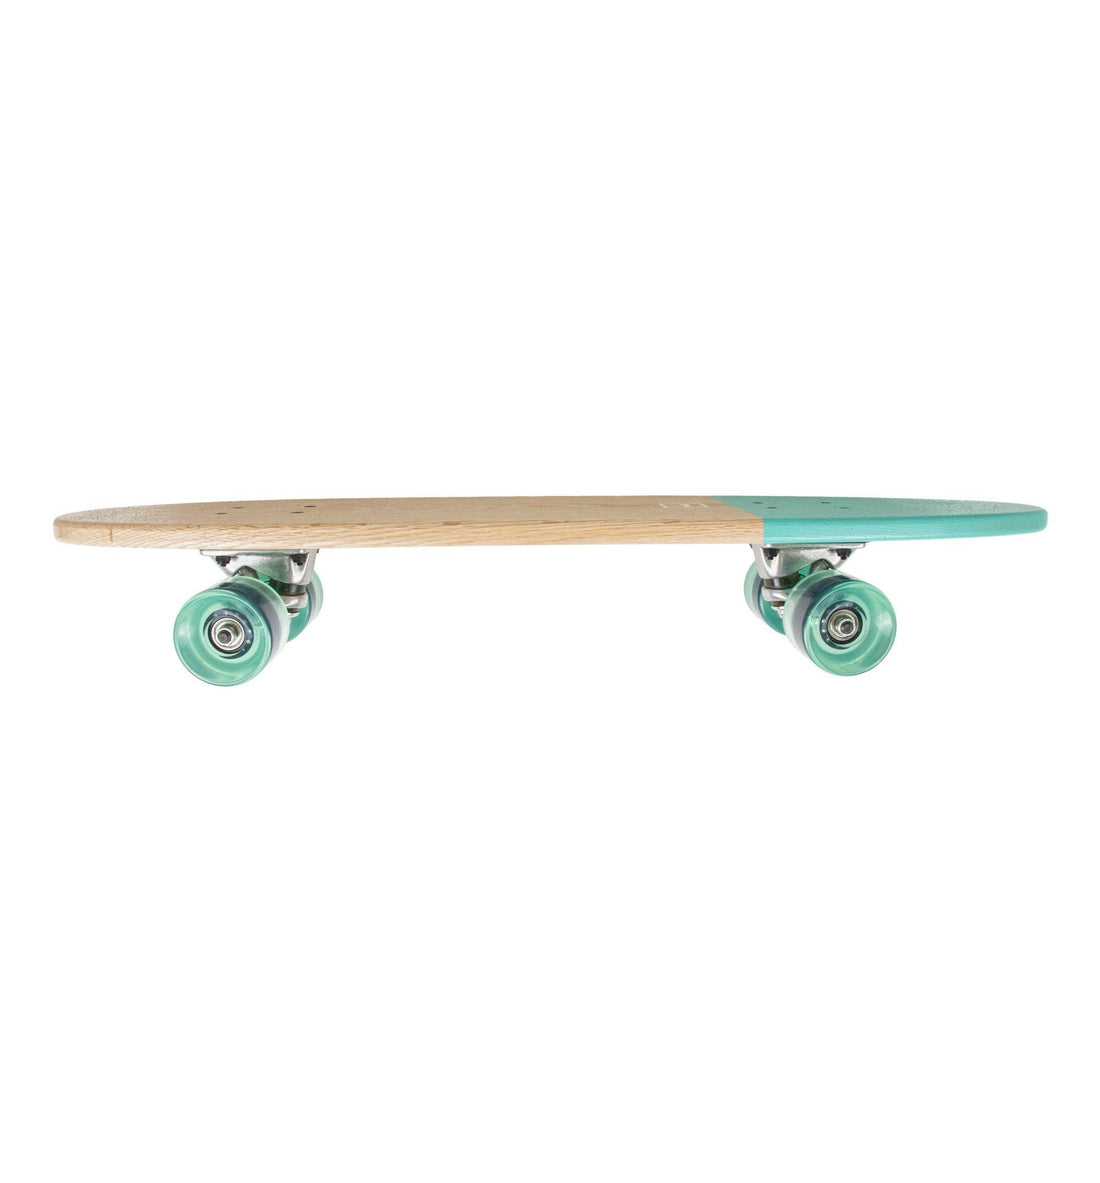 World's Greatest Skateboard- Dipped- Teal - Skate - Iron and Resin